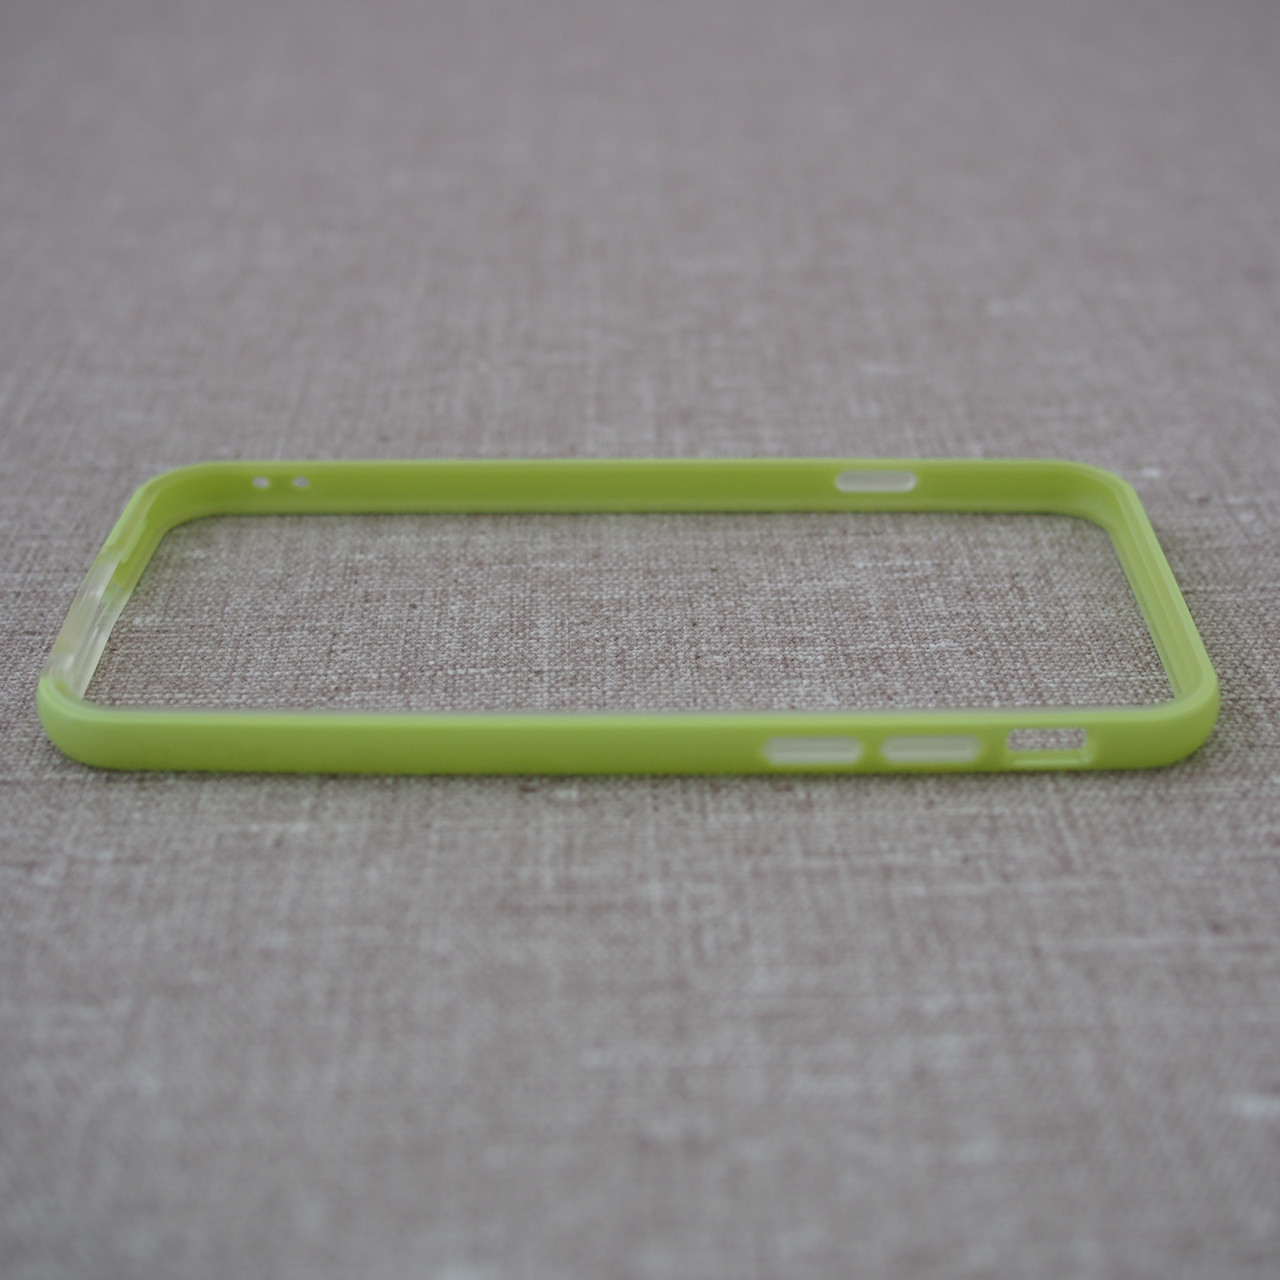 ROCK Duplex Slim Guard iPhone 6 green Для телефона